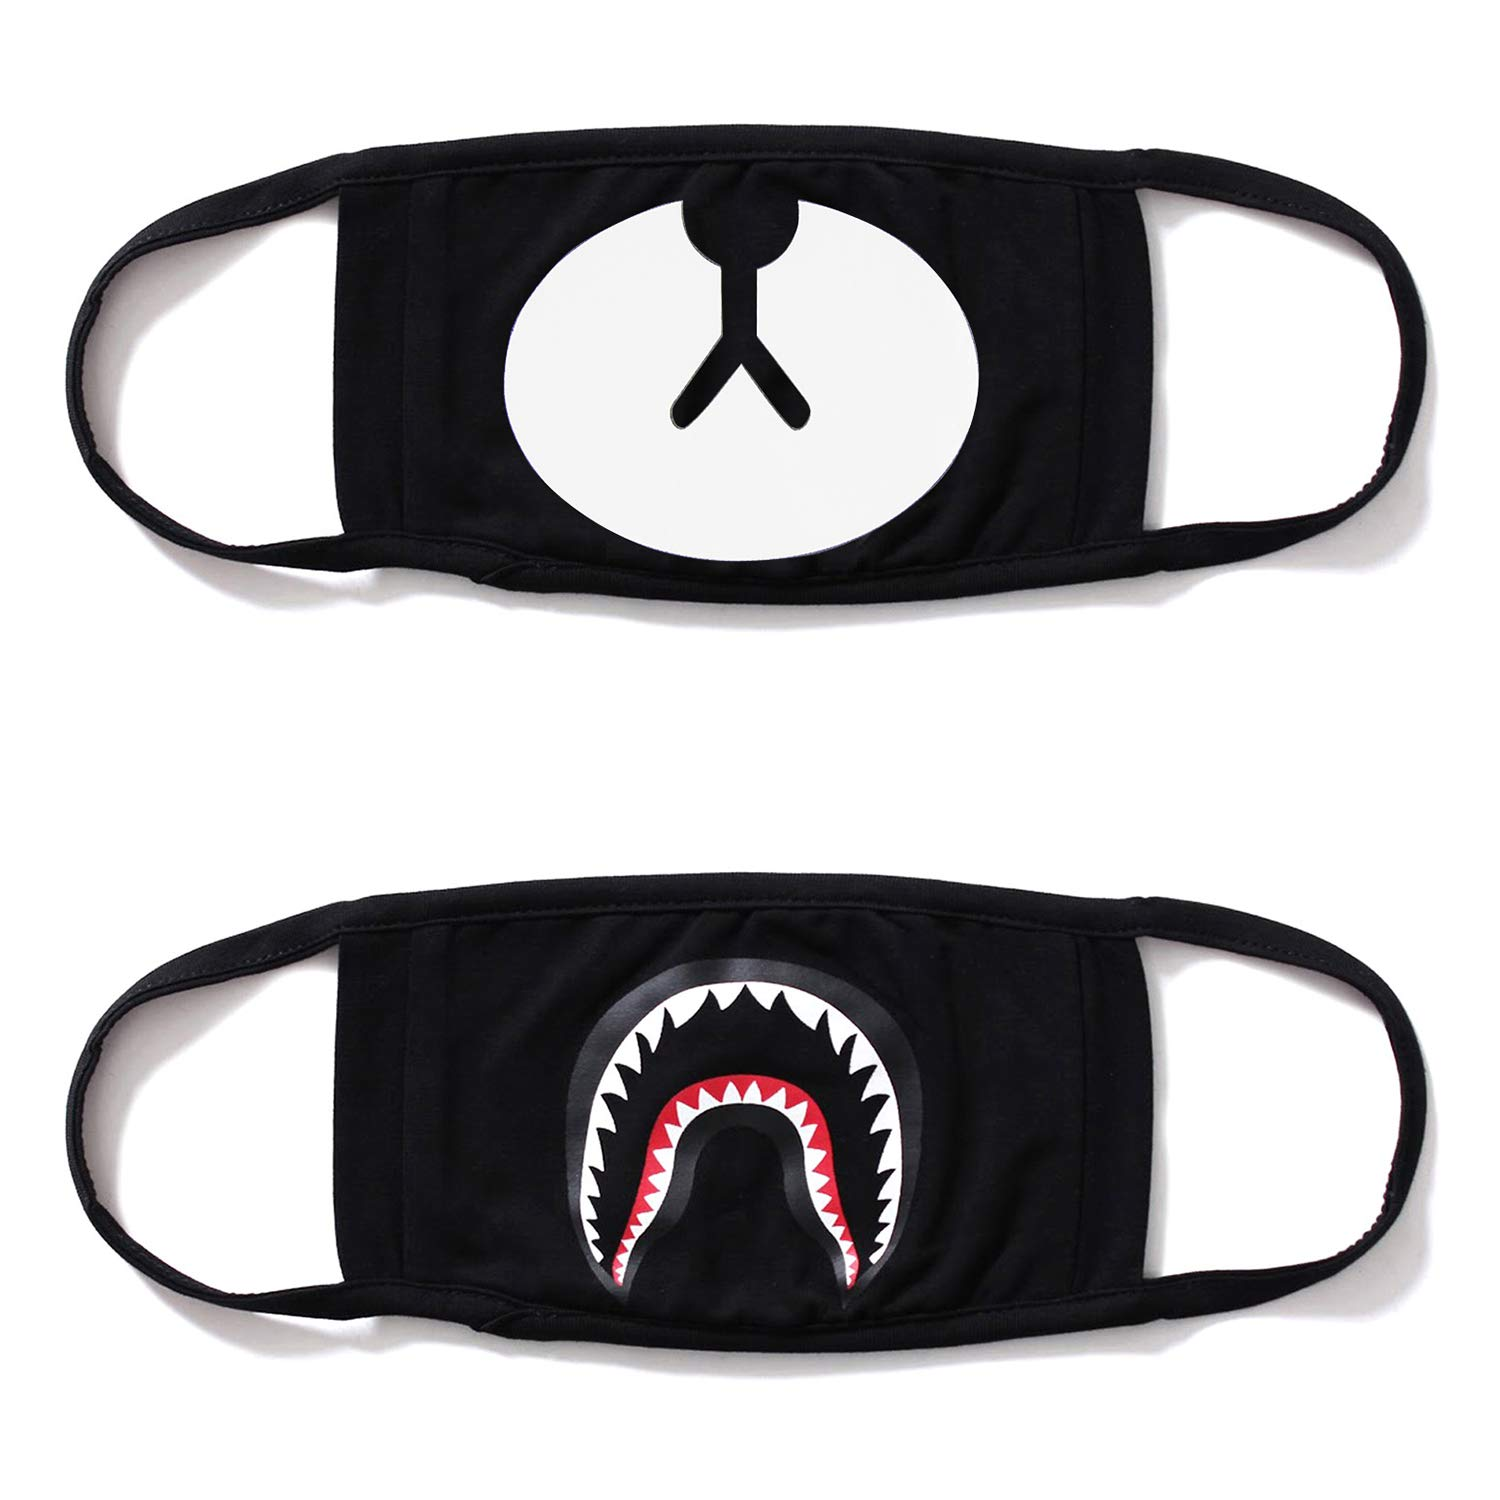 Cotton Mask 2 Pack Shark Mouth Mask Unisex Teo & Ayo Funny Shape for Kids Teens Men Women Lovers, Fog Respirator Anti Flu and Dust Protection Pollution Germs Allergens Windproof Half Face Masks(Black)